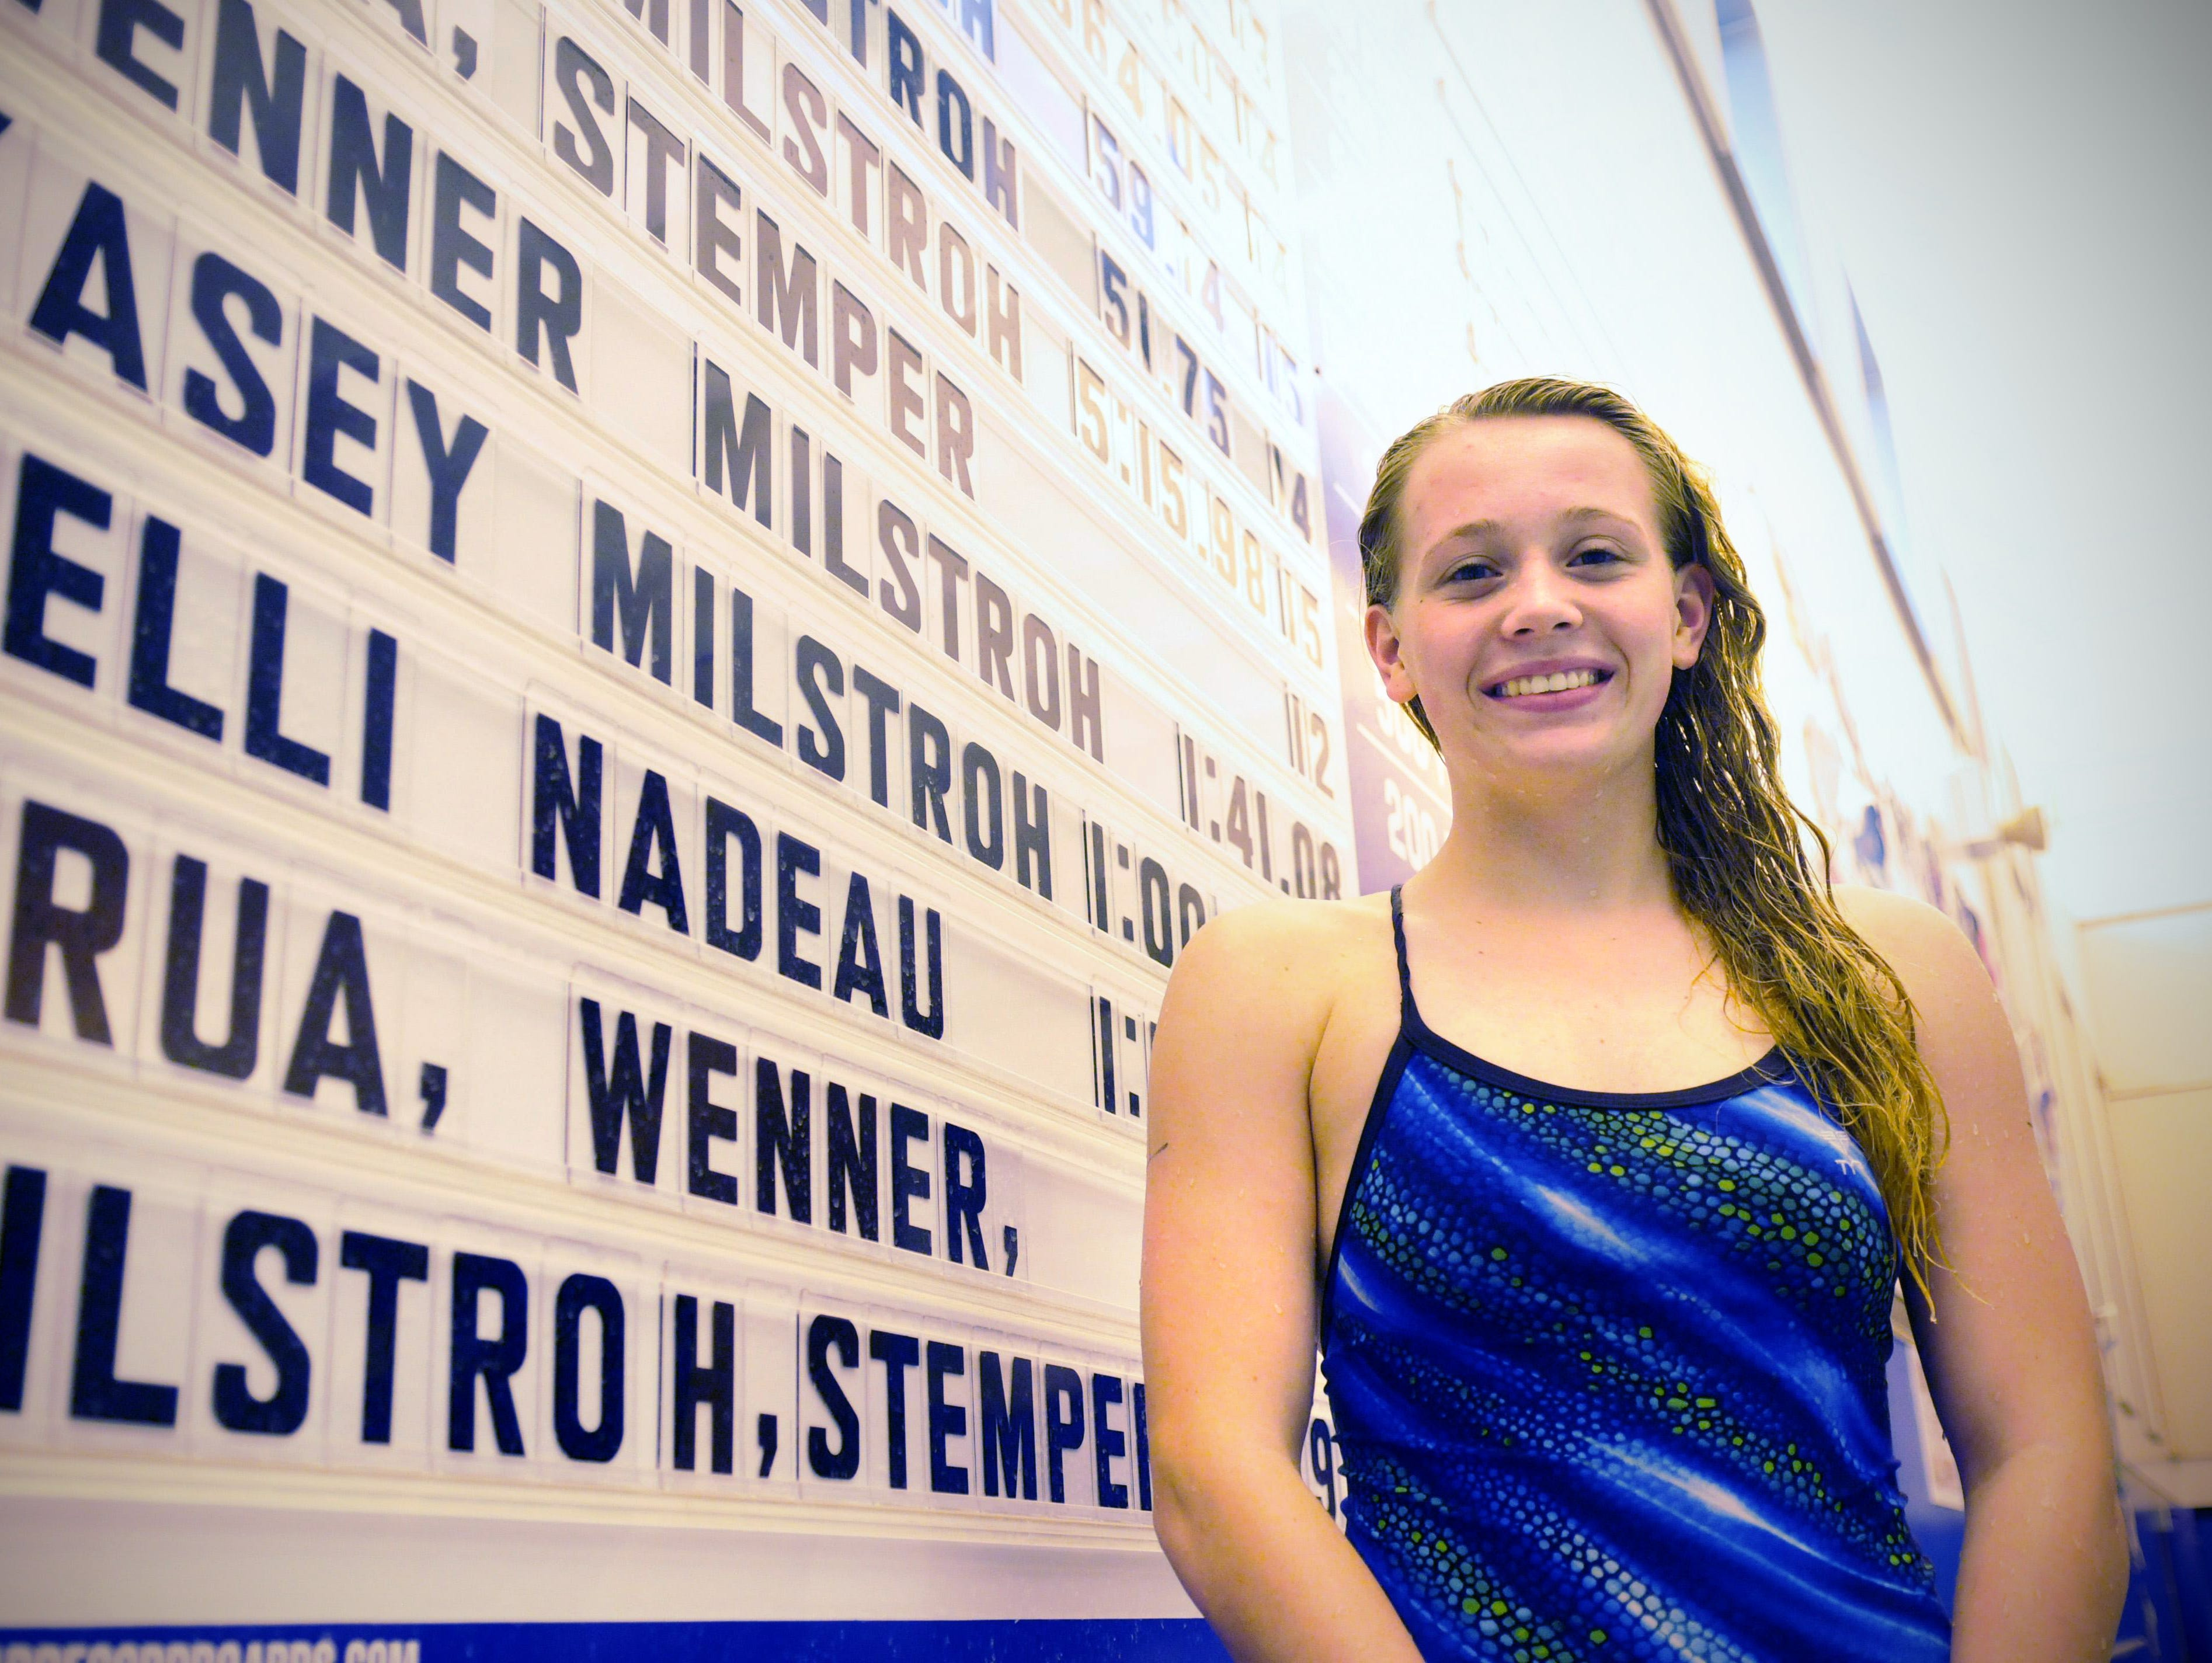 Kasey Milstroh Foley High school swimmer Kasey Milstroch stands next to her times on Sept. 28 at the Foley High School pool.